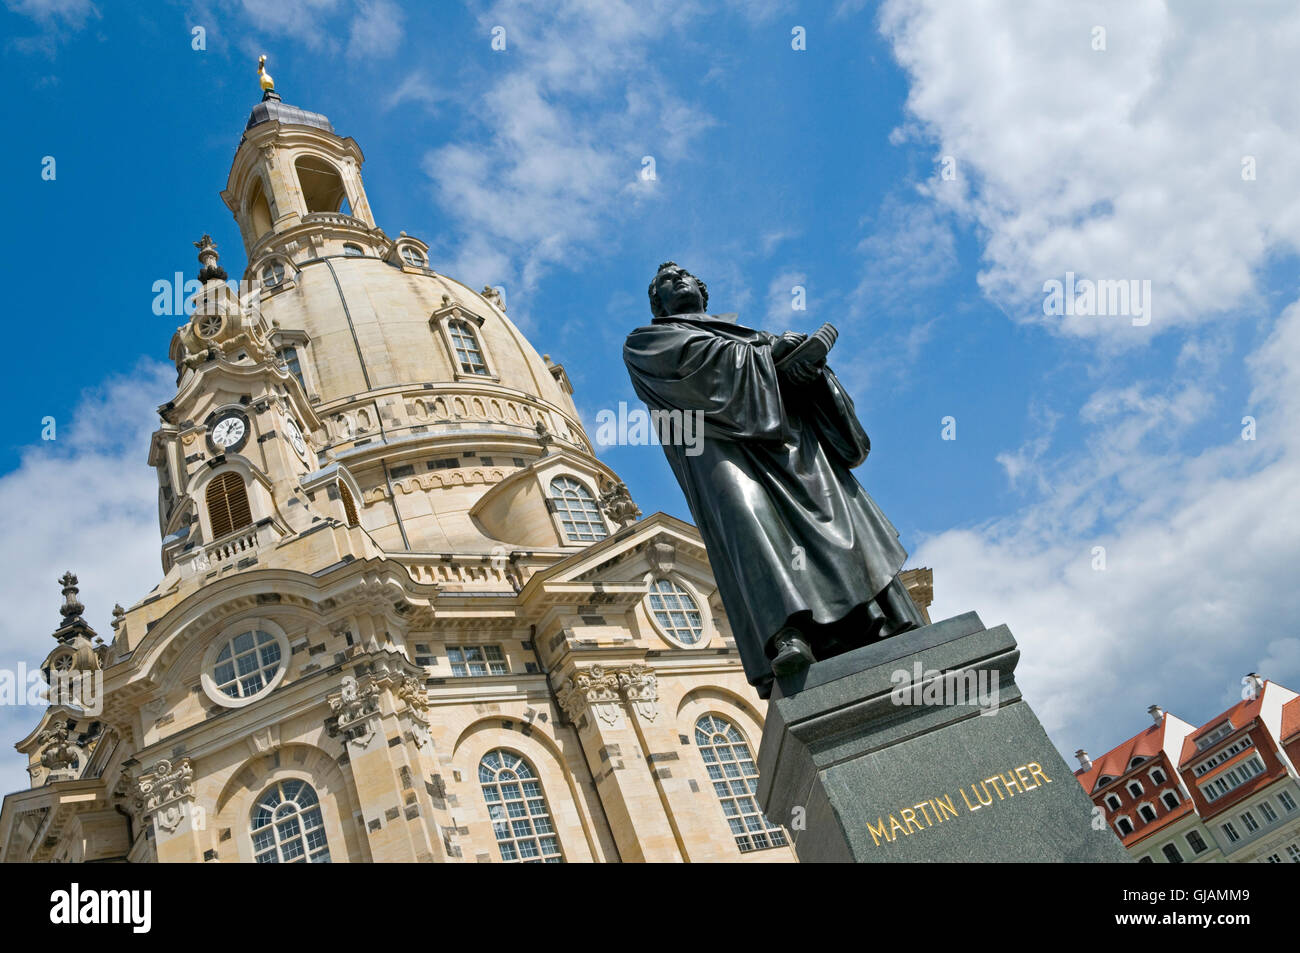 The statue of Martin Luther in front of the Frauenkirche in Dresden, Germany. The church was destroyed during the - Stock Image